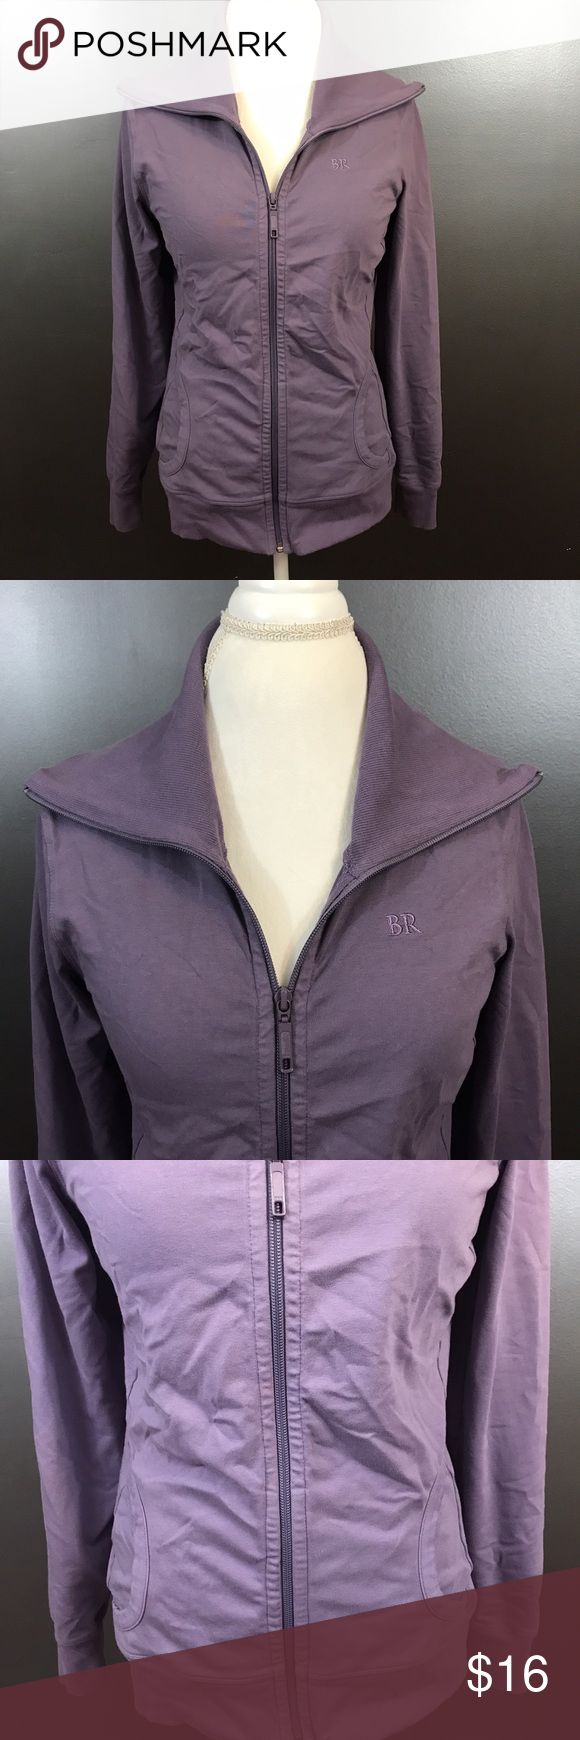 🇺🇸SALE🇺🇸Banana Republic Jacket Size Medium Women's size medium periwinkle purple Banana Republic stretch, zip up, collared jacket with front pockets. 92% cotton, 8% spandex. Banana Republic Jackets & Coats